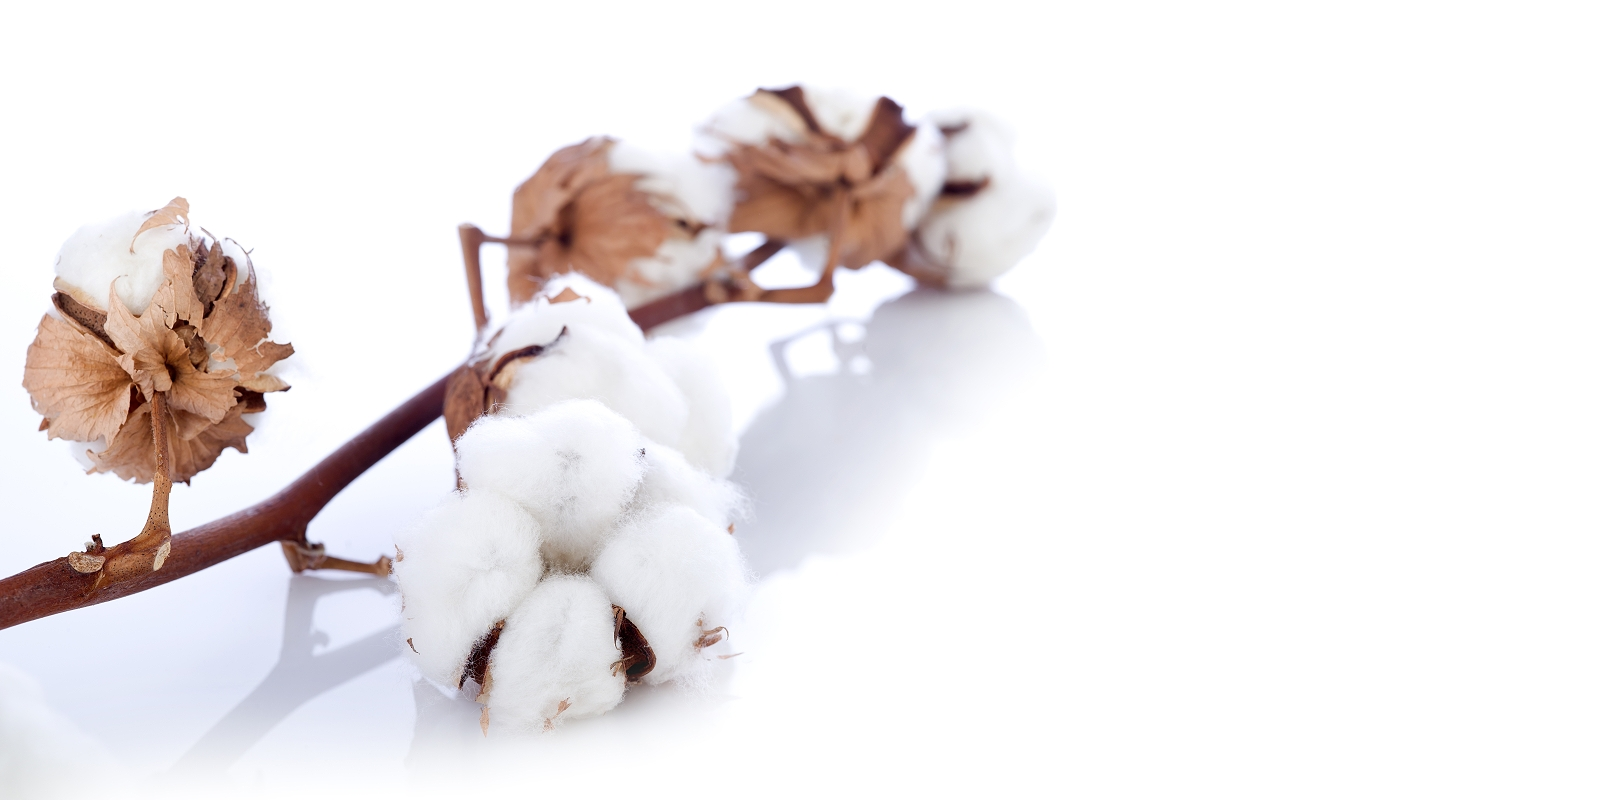 Non-GMO cotton